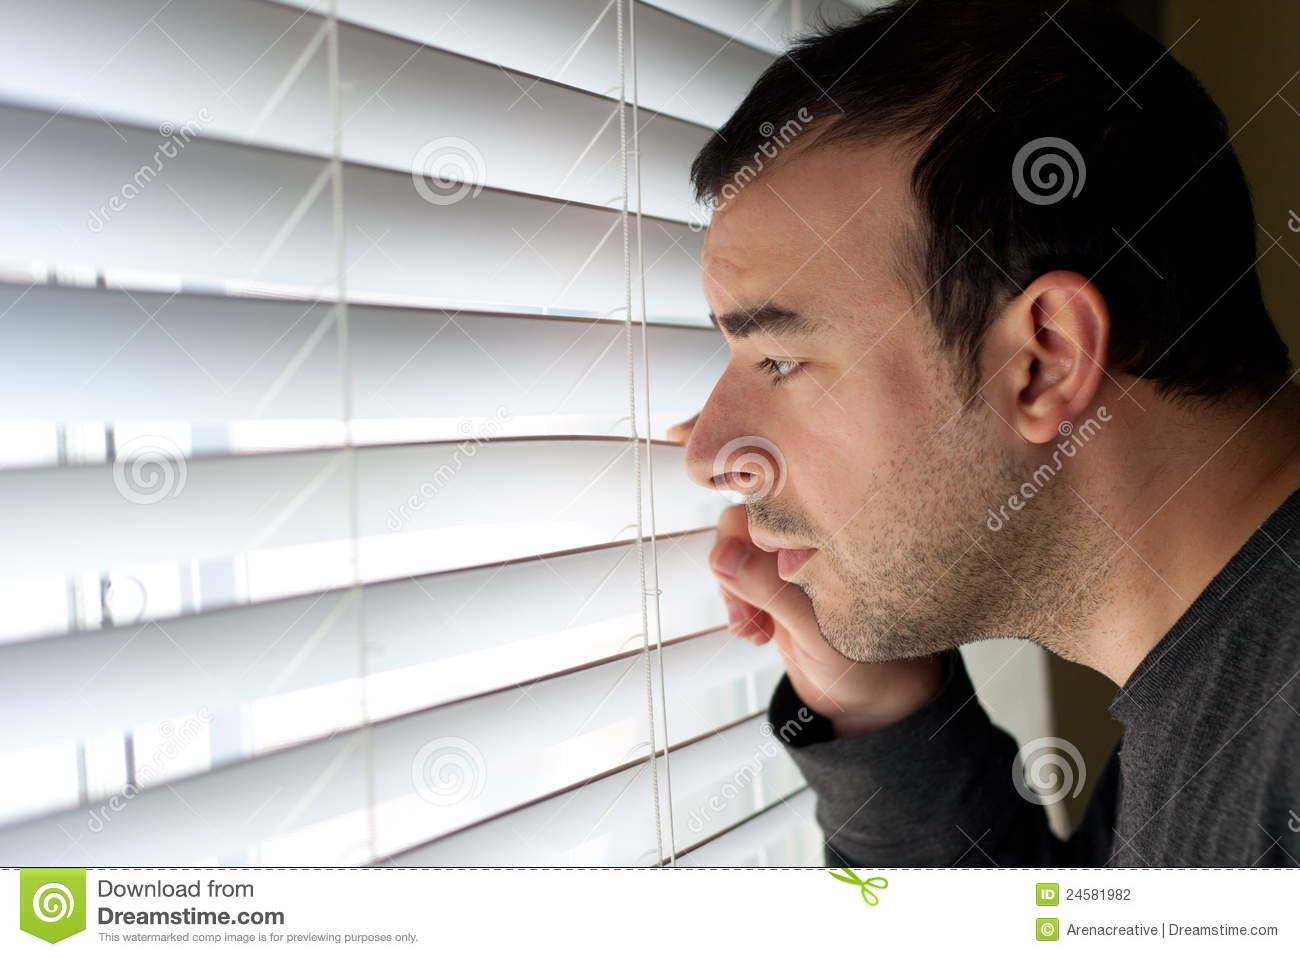 Man Peeking Through Blinds Stock Photography Image 24581982